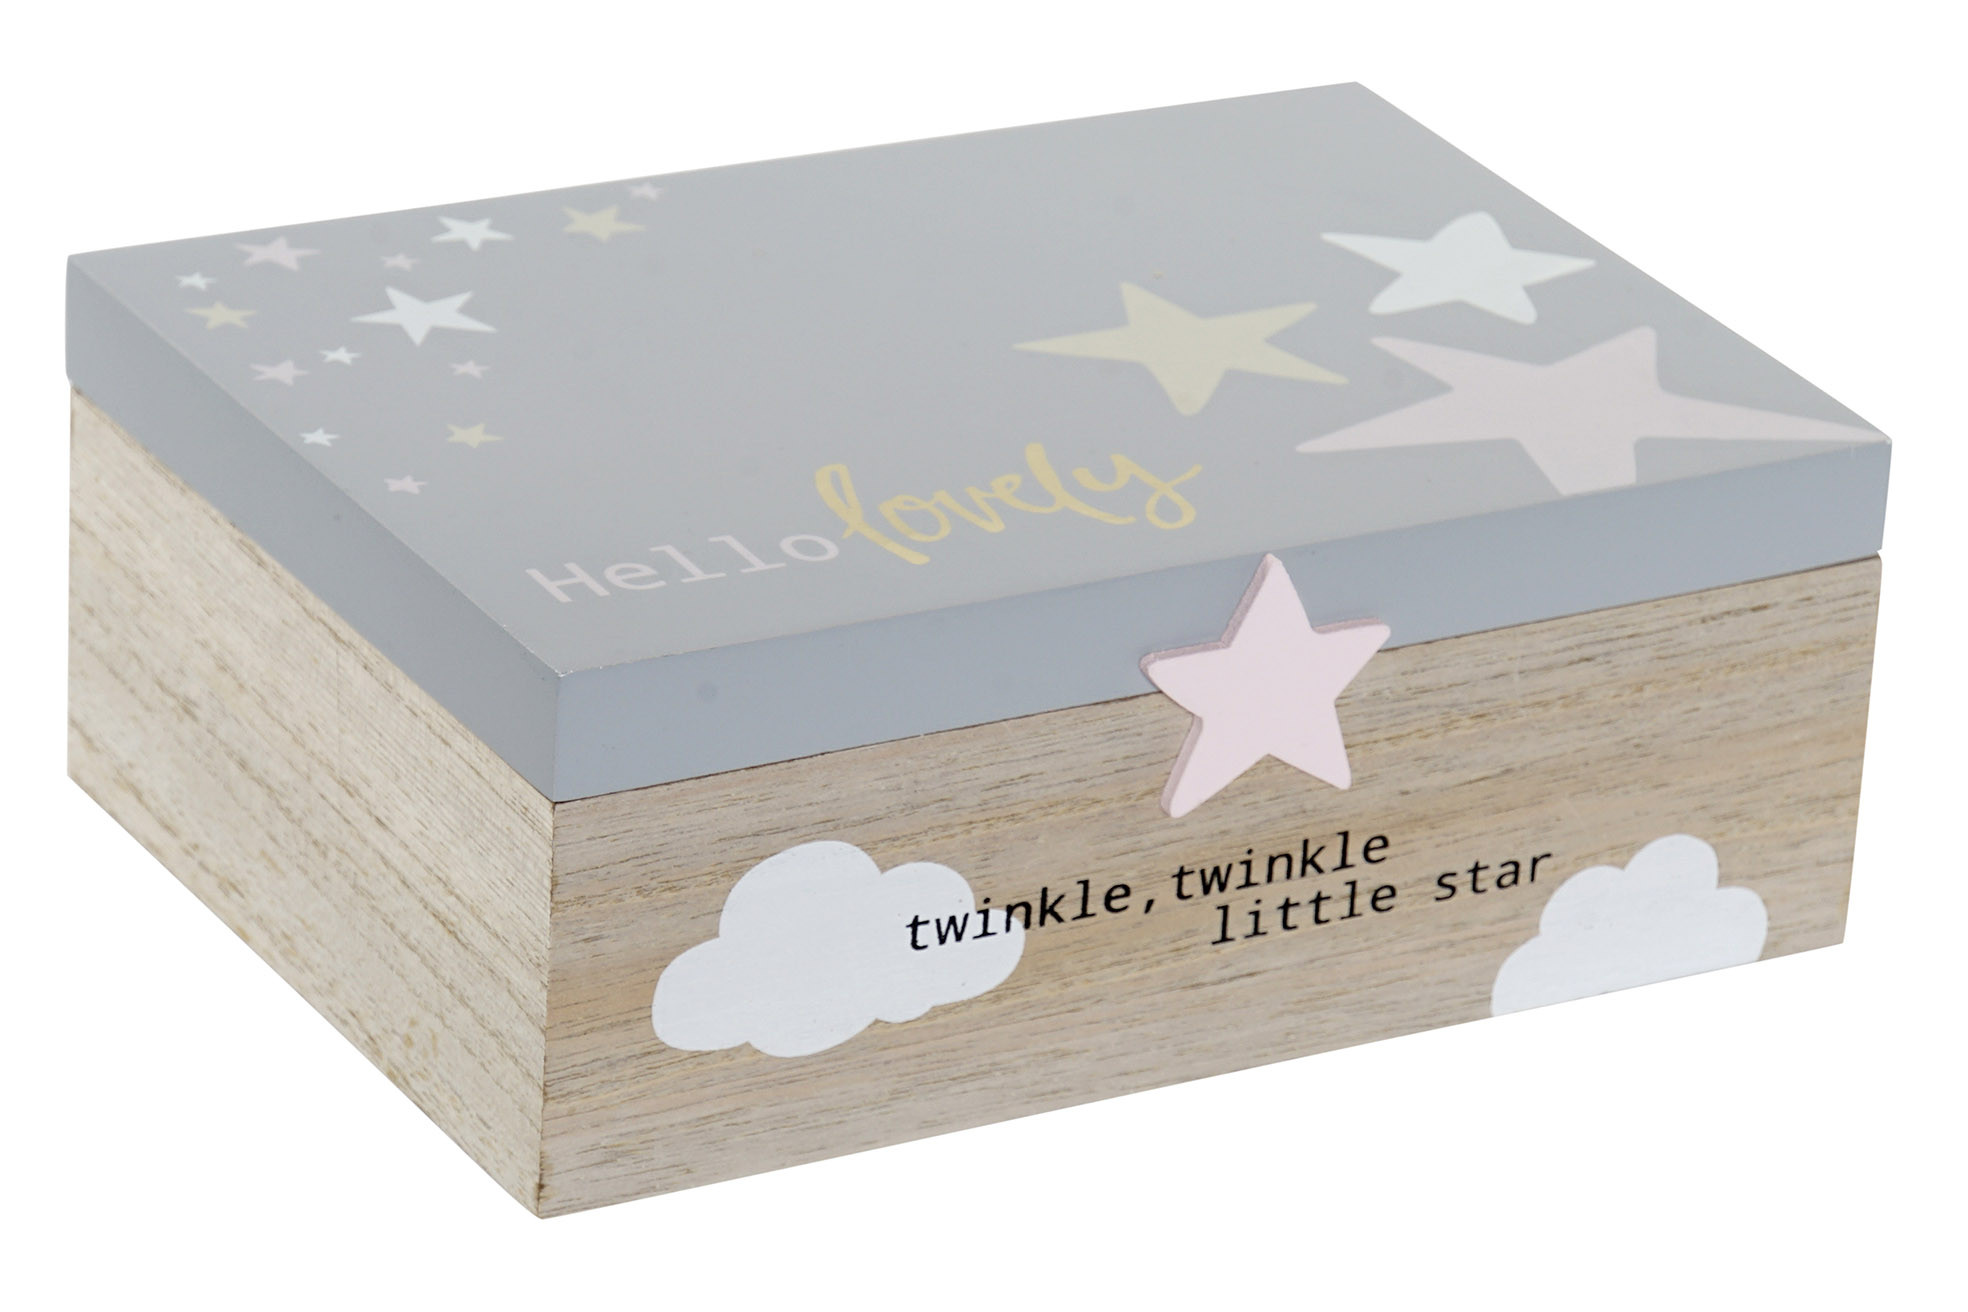 Box Child with Phrase and Stars Design, made of wood MDF 22x15x8,5 cm